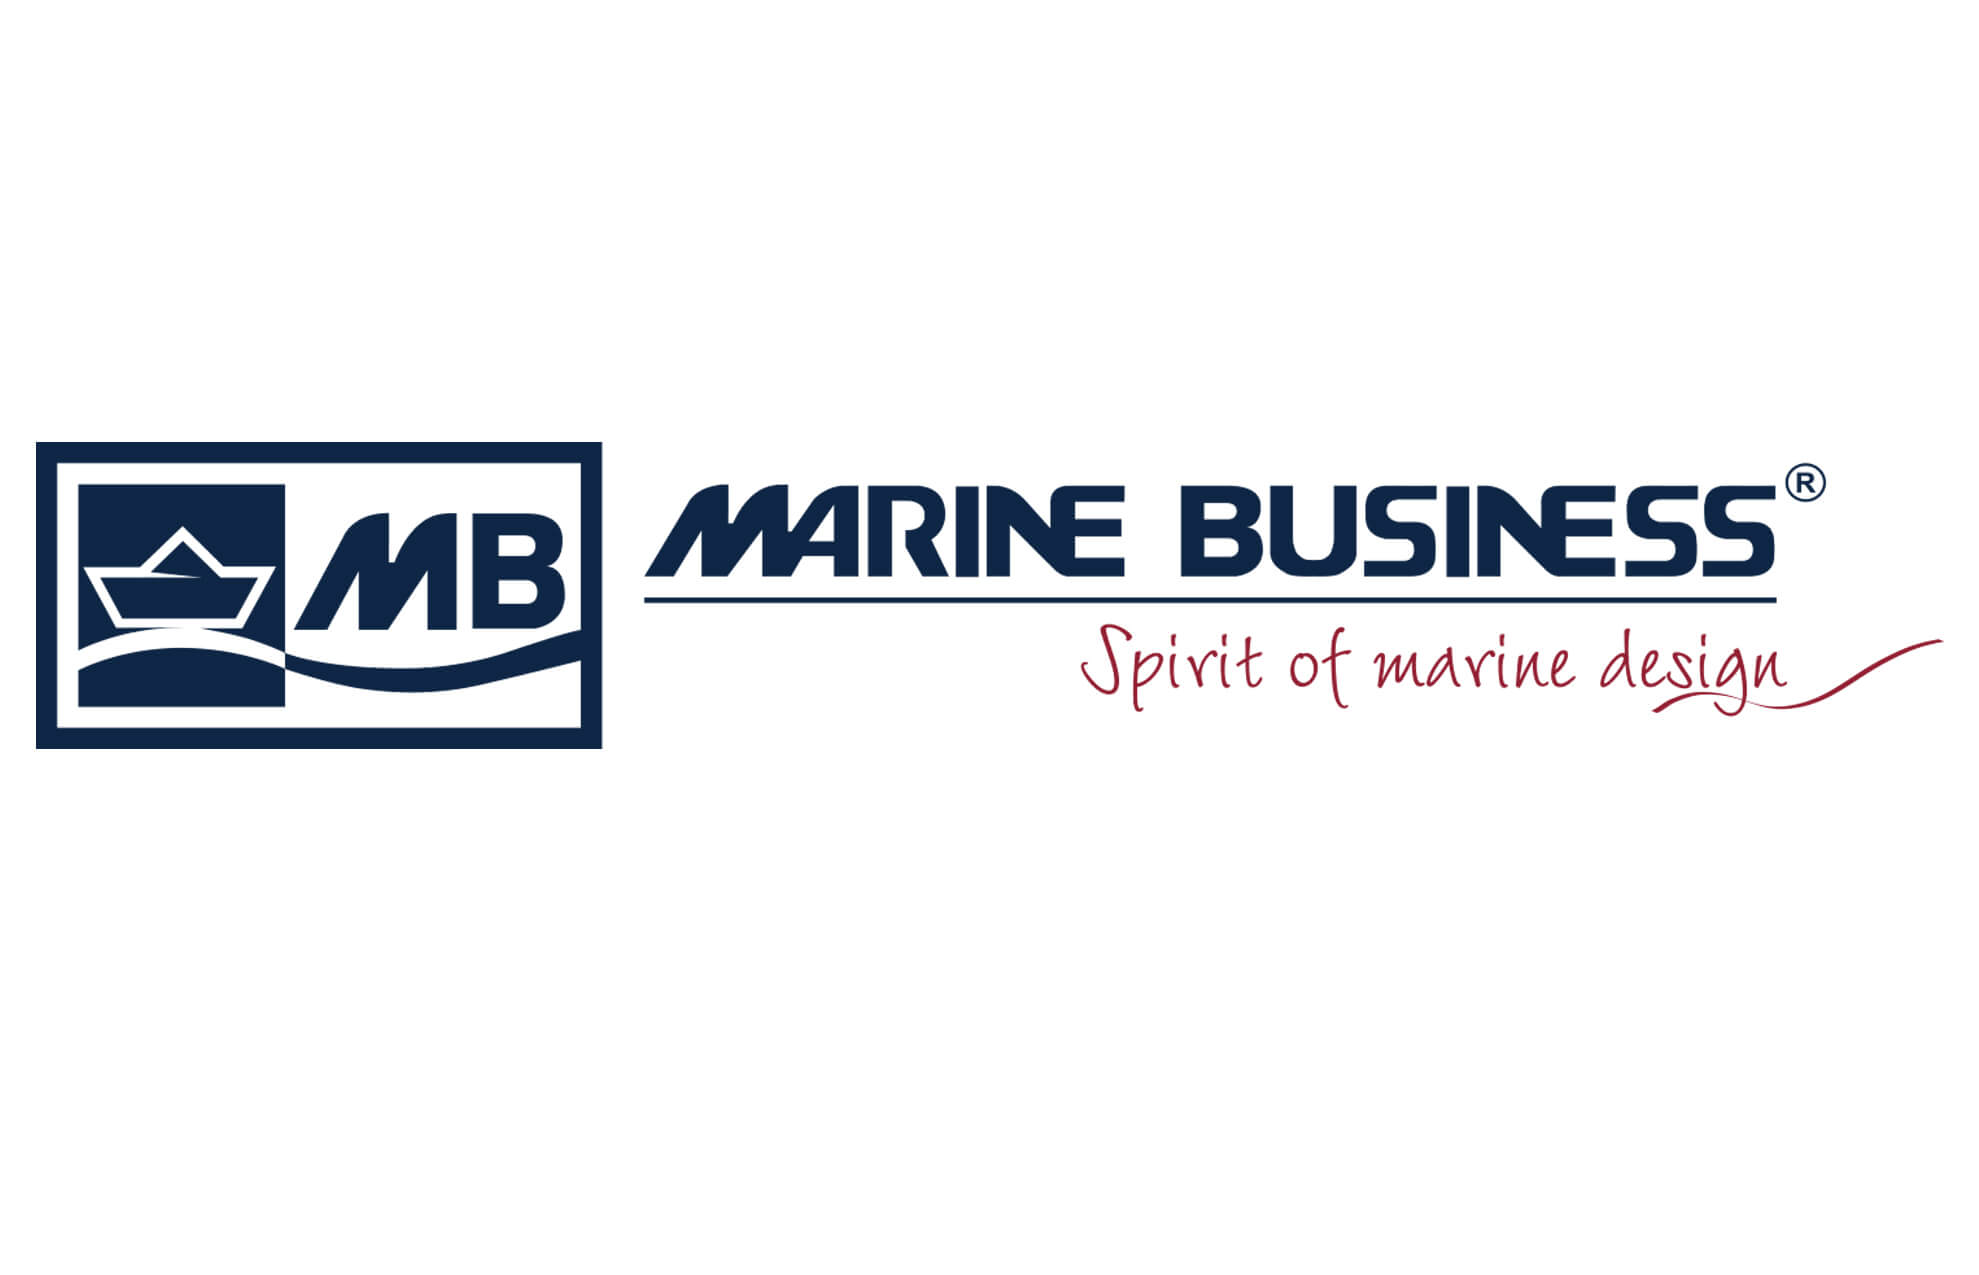 Logo mb restyling barcelona1 - Breanding. Restyling. Marine Business